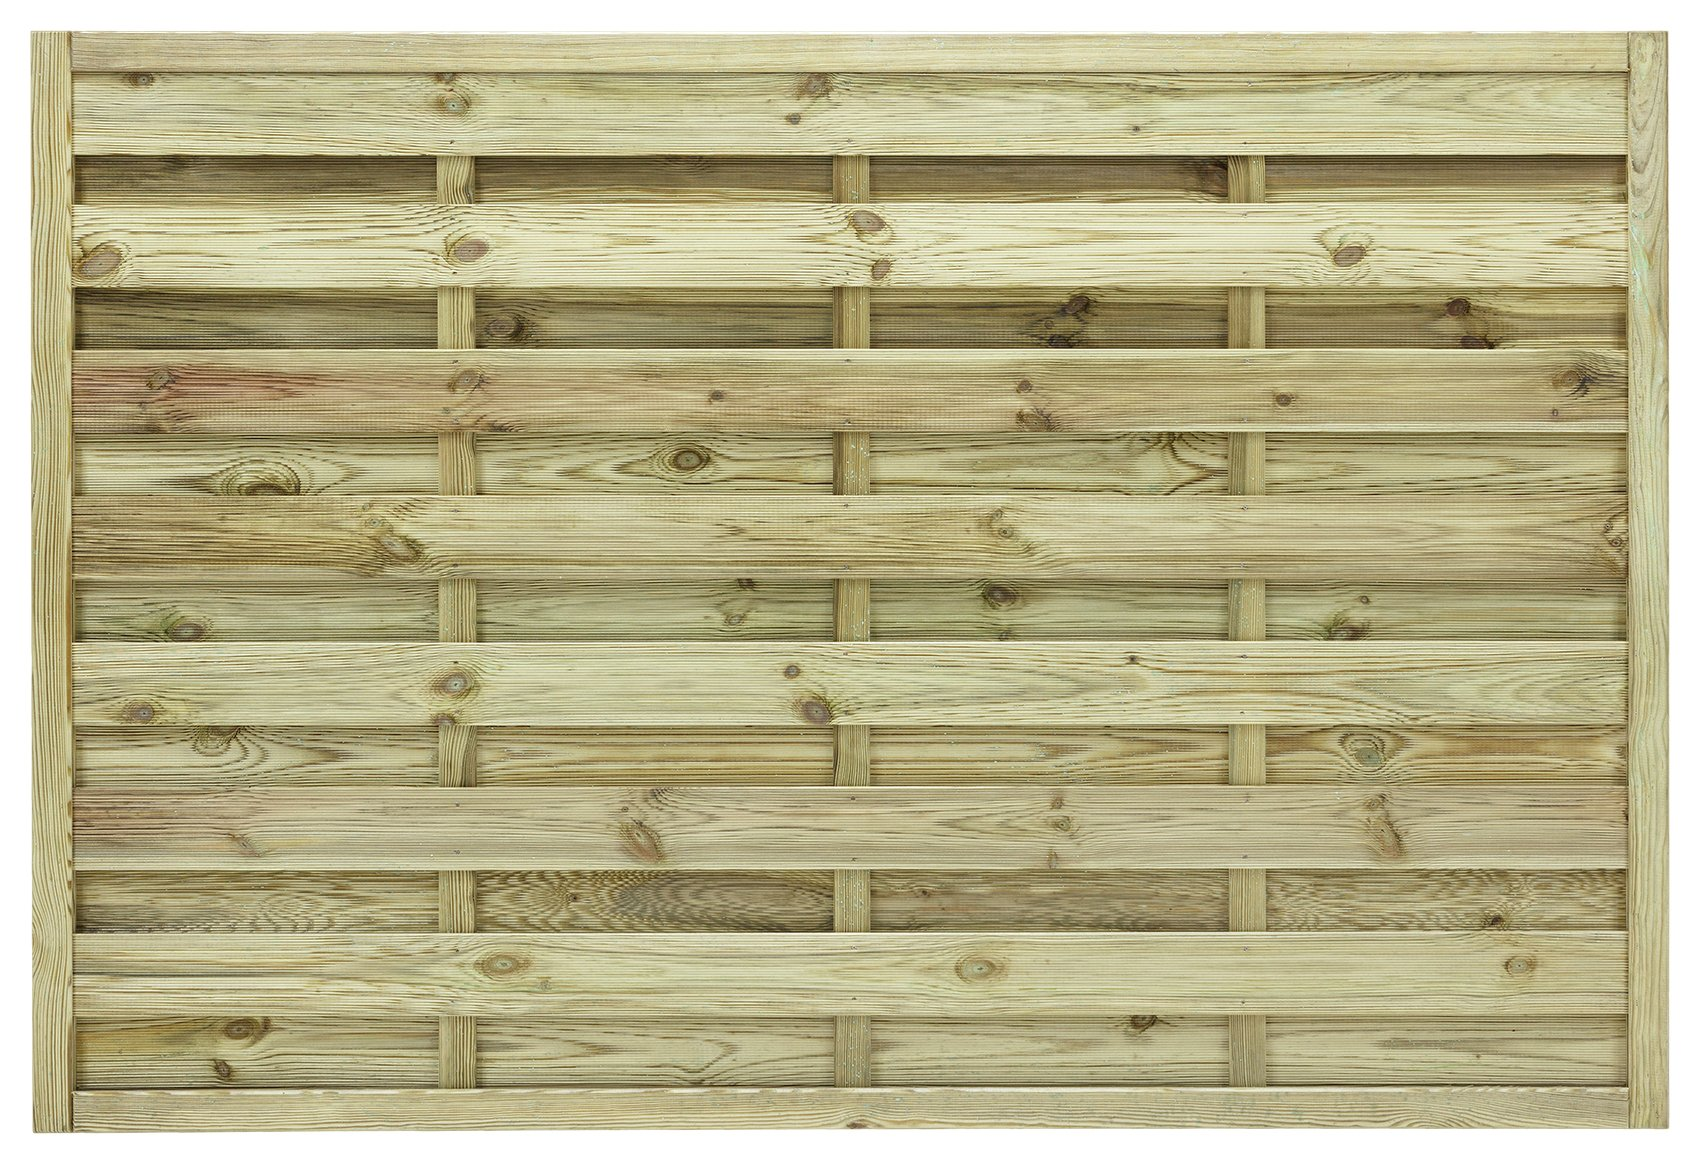 Grange 1.2m St Espirit Square Fence Panel - Pack of 5. lowest price